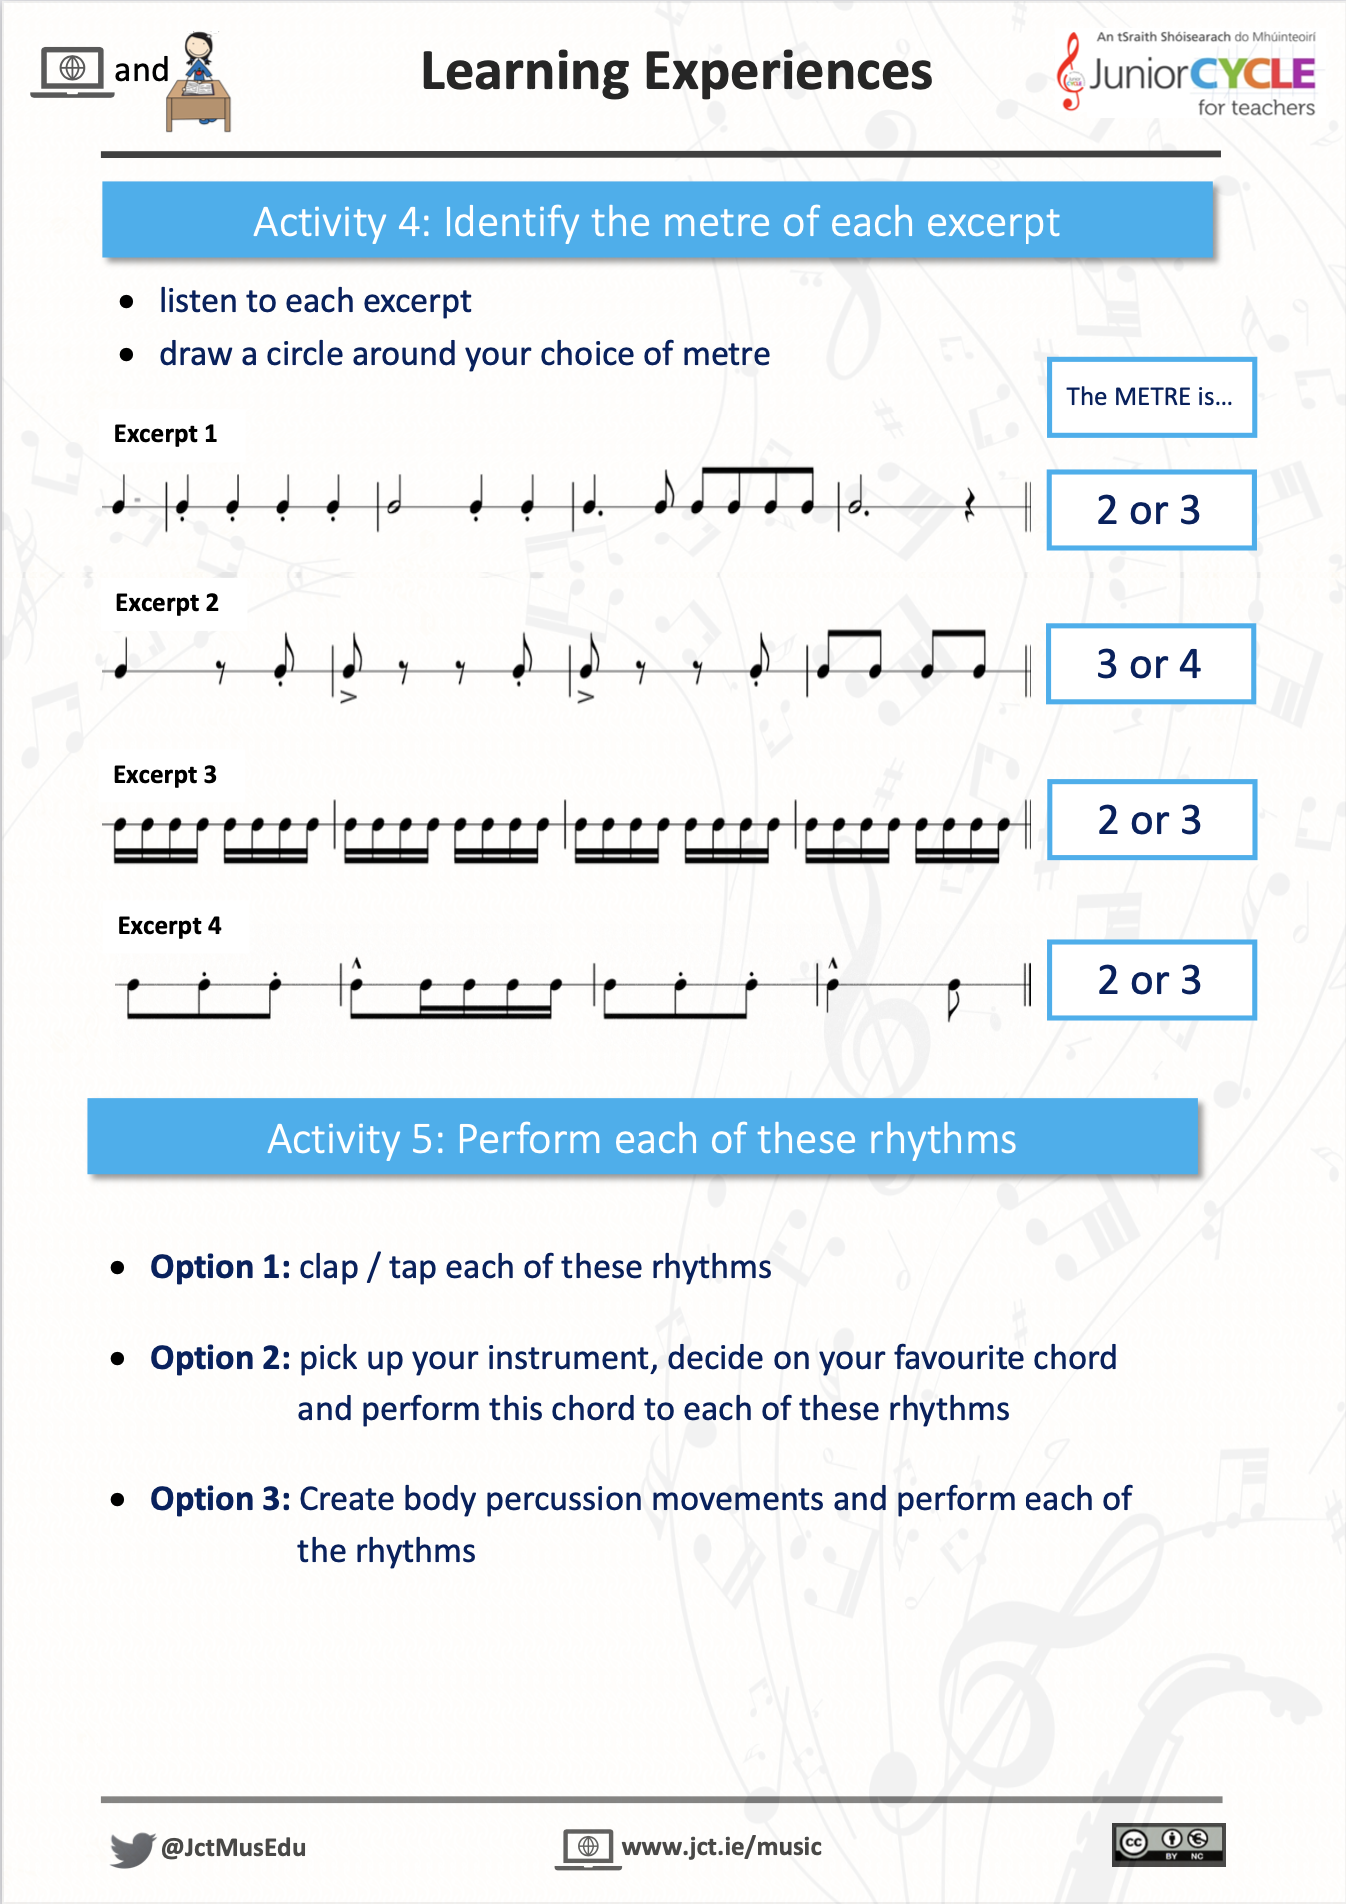 Online Learning Creating Music - Activity 4 & 5 PDF